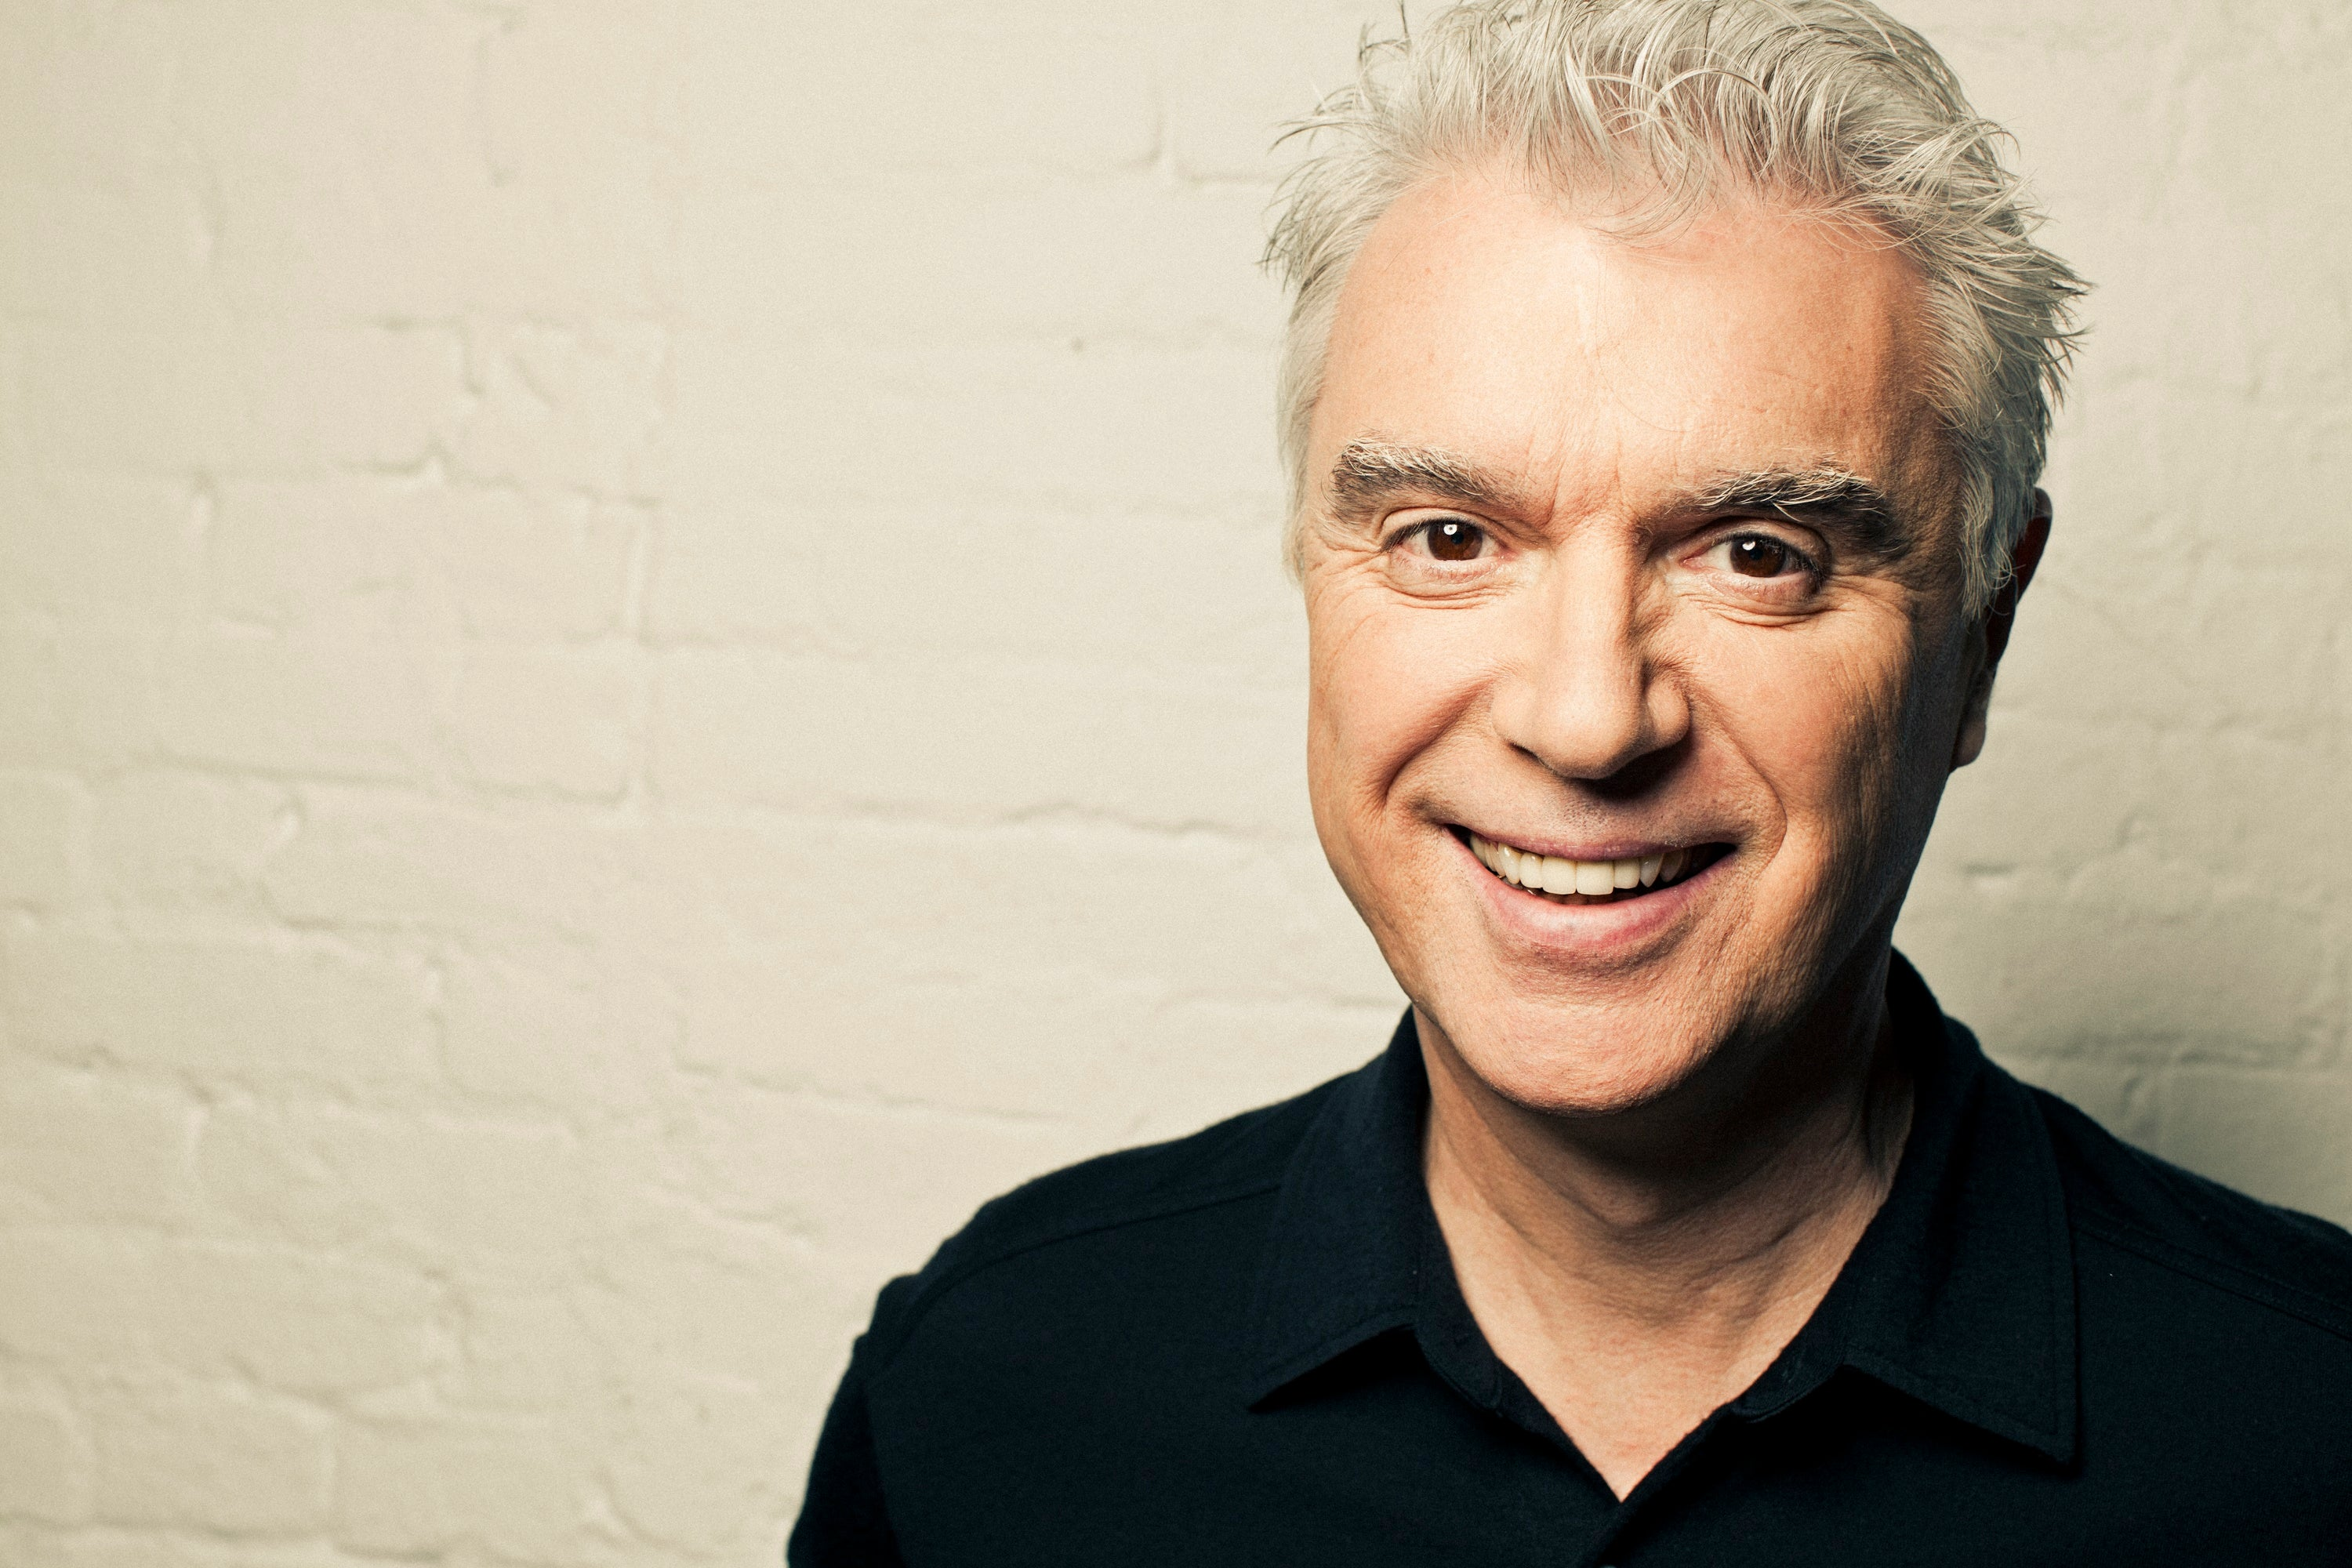 Tips: David Byrne, 2017s dressy hair style of the cool talented  musician